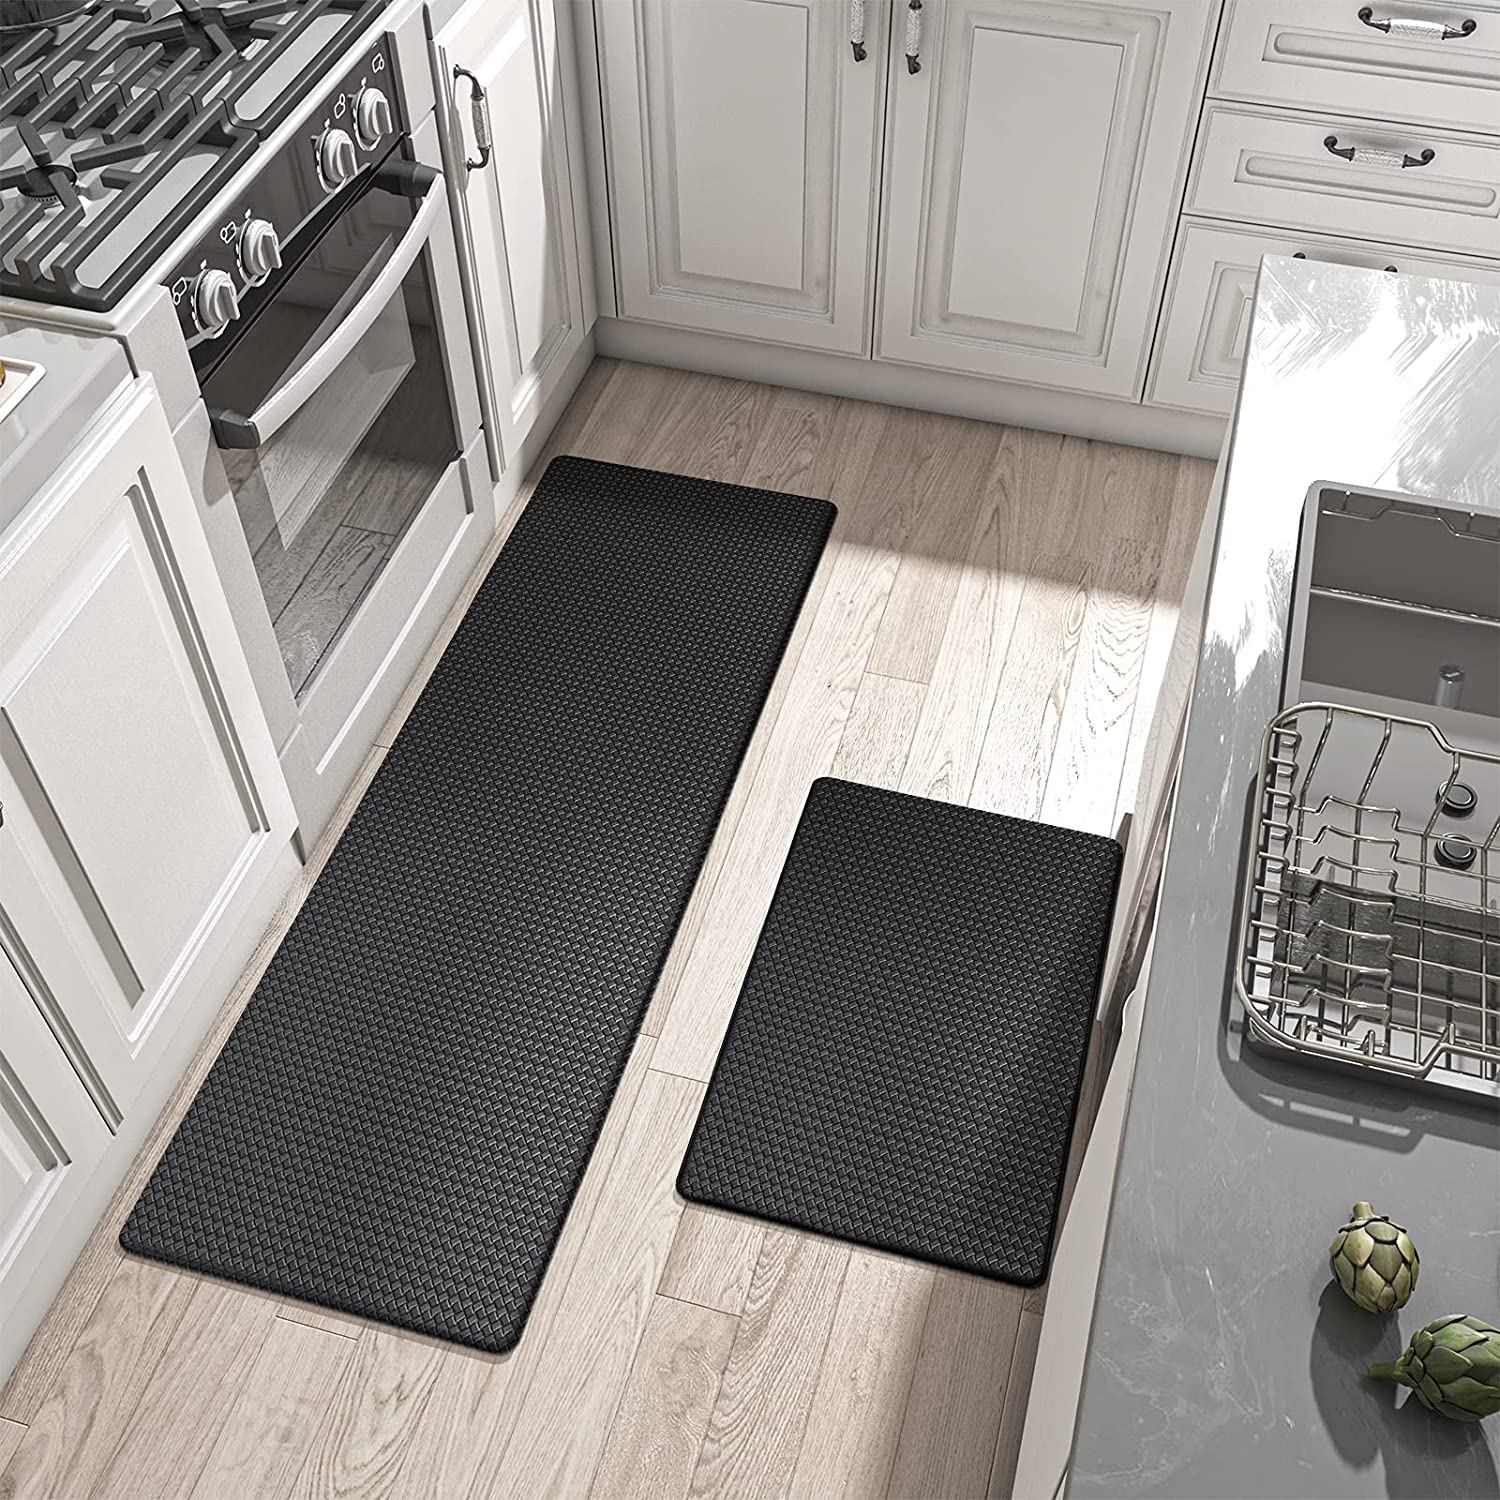 DEXI Kitchen Rugs and Mats Cushioned Anti Fatigue Comfort Runner Mat for  Floor Rug Standing Rugs Set of 9,9